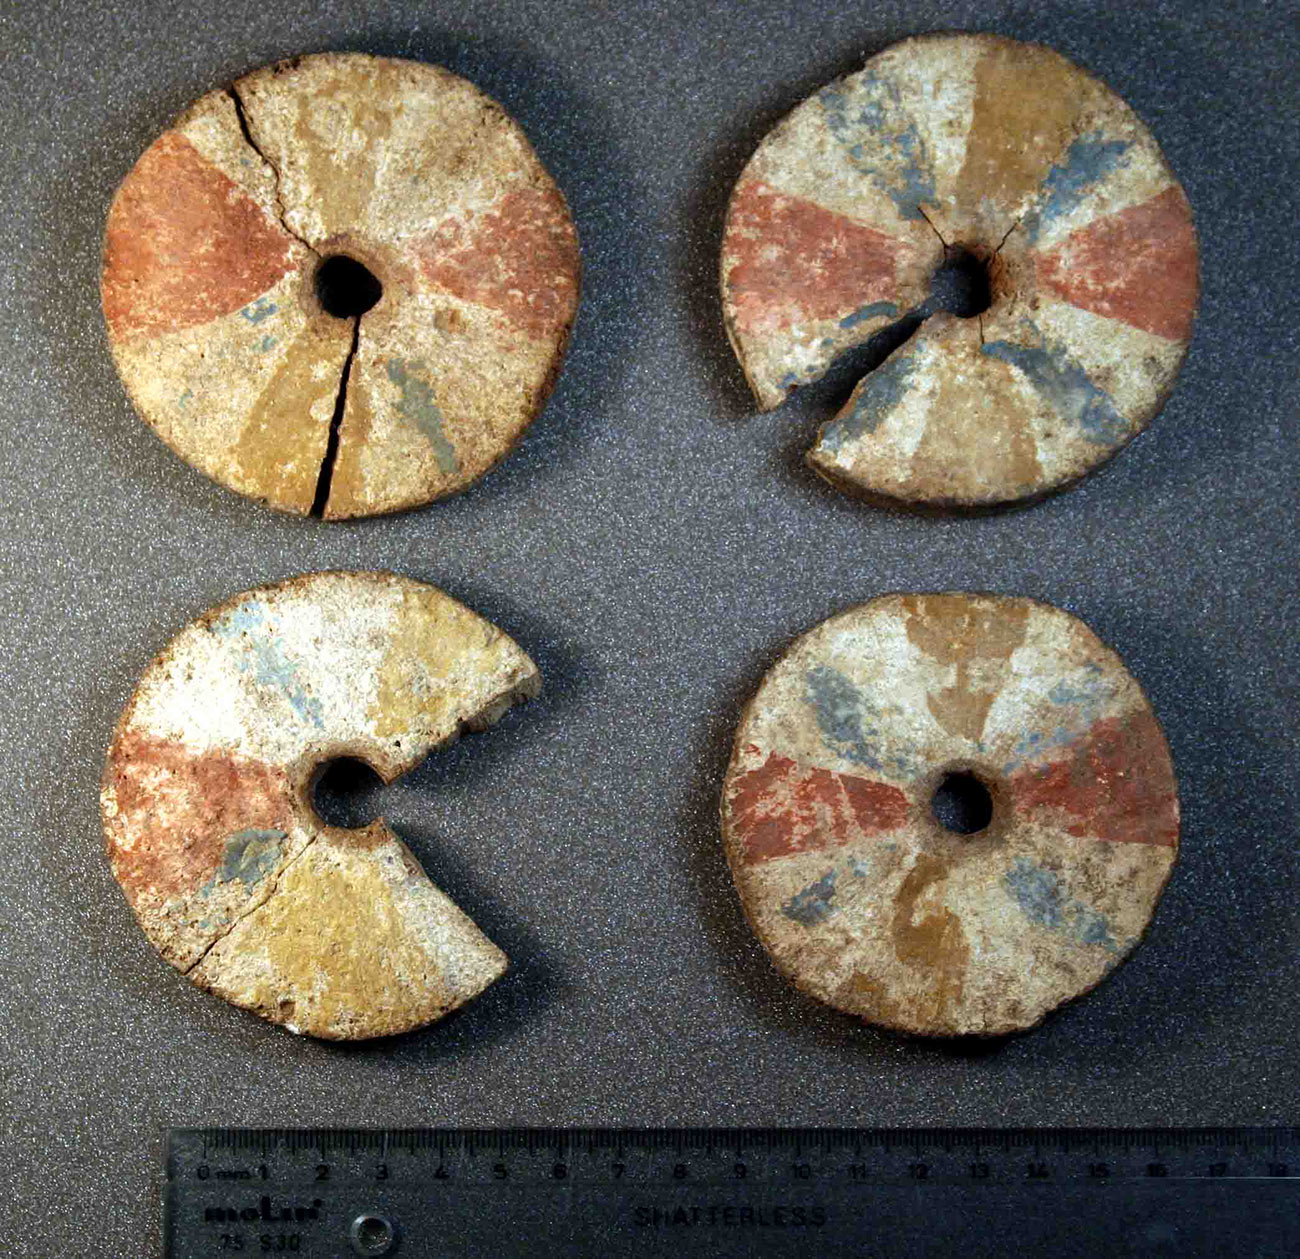 Four brightly painted wooden disks with holes in the center. Three are cracked or missing pieces.